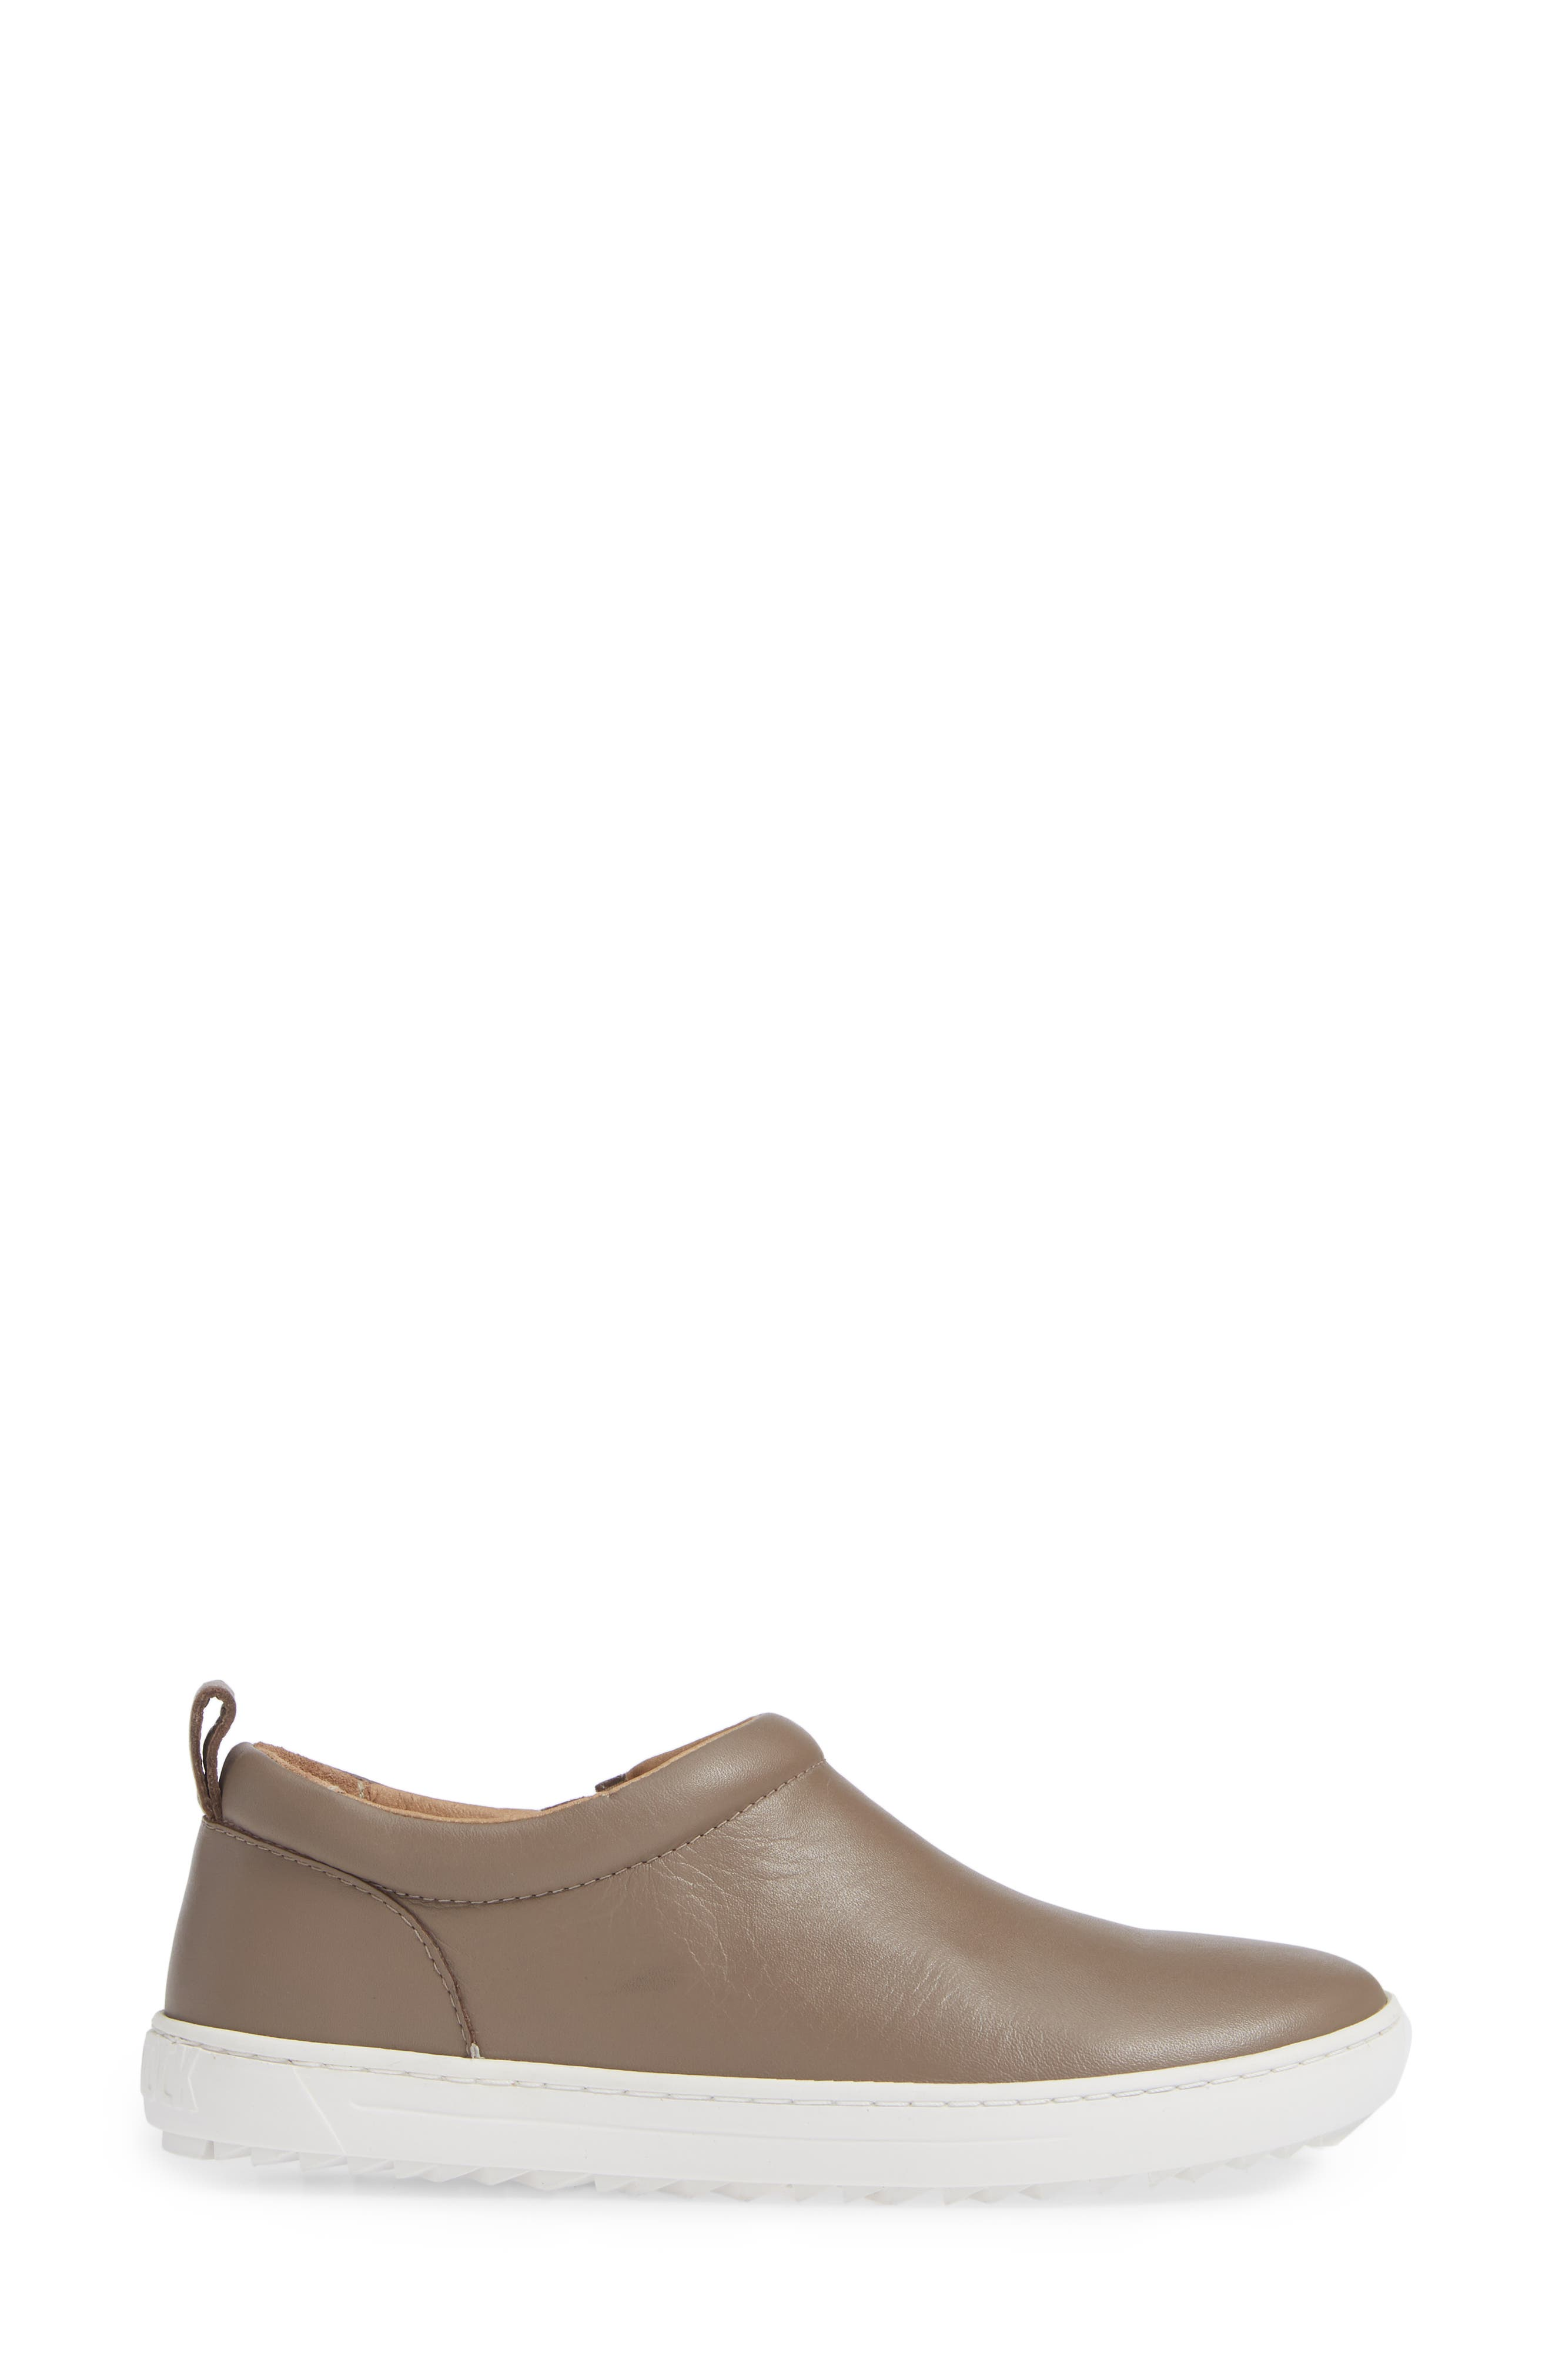 Rena Slip-On Sneaker,                             Alternate thumbnail 3, color,                             TAUPE LEATHER